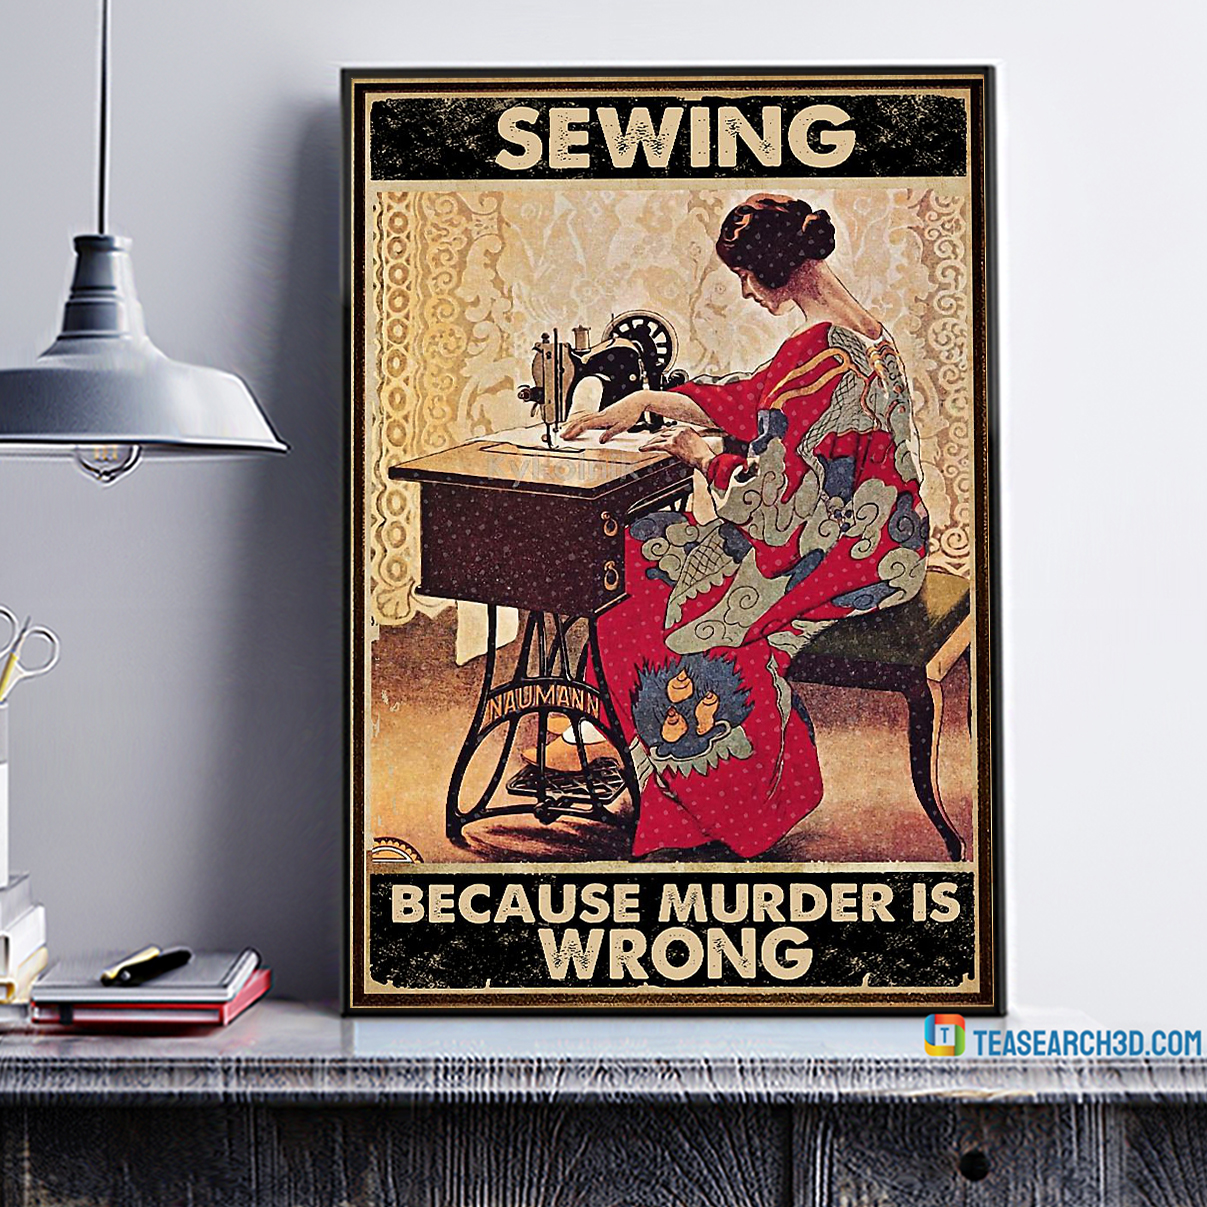 Sewing Because Murder Is Wrong canvas